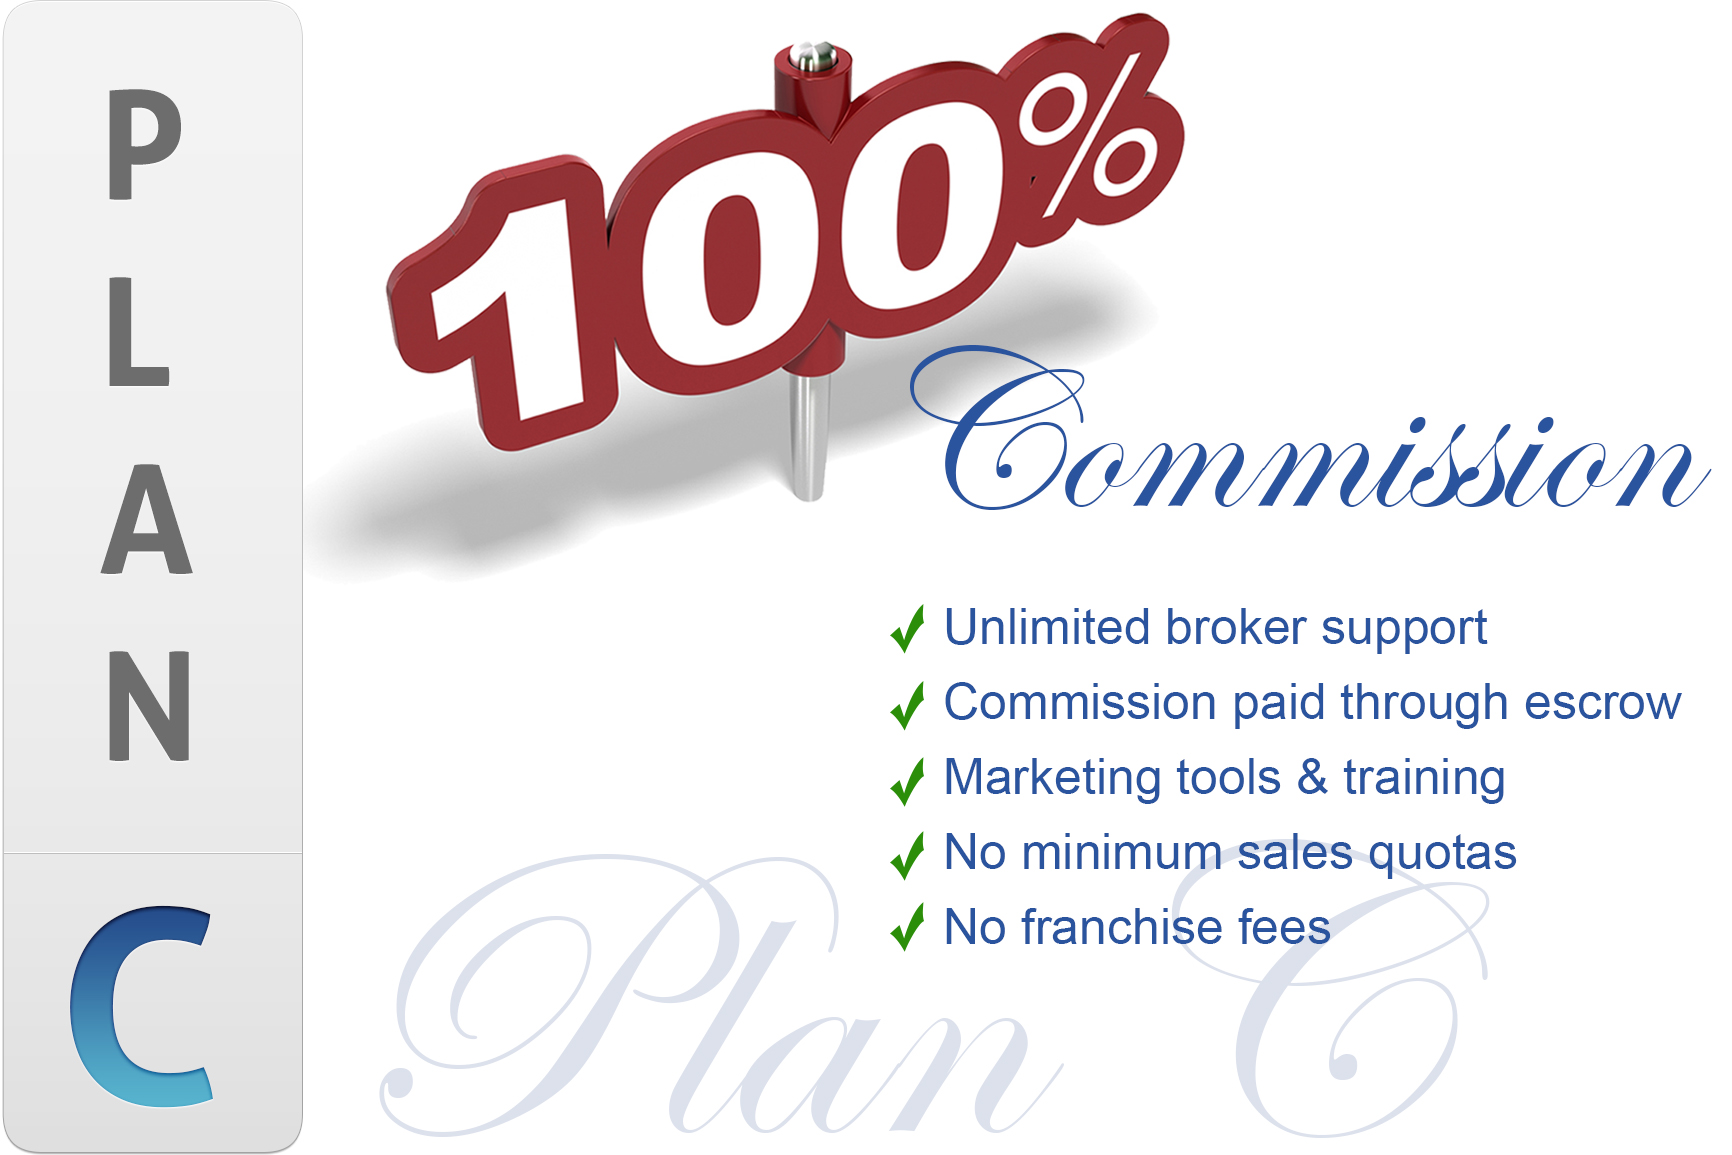 Monthly Fee 100% Commission Program